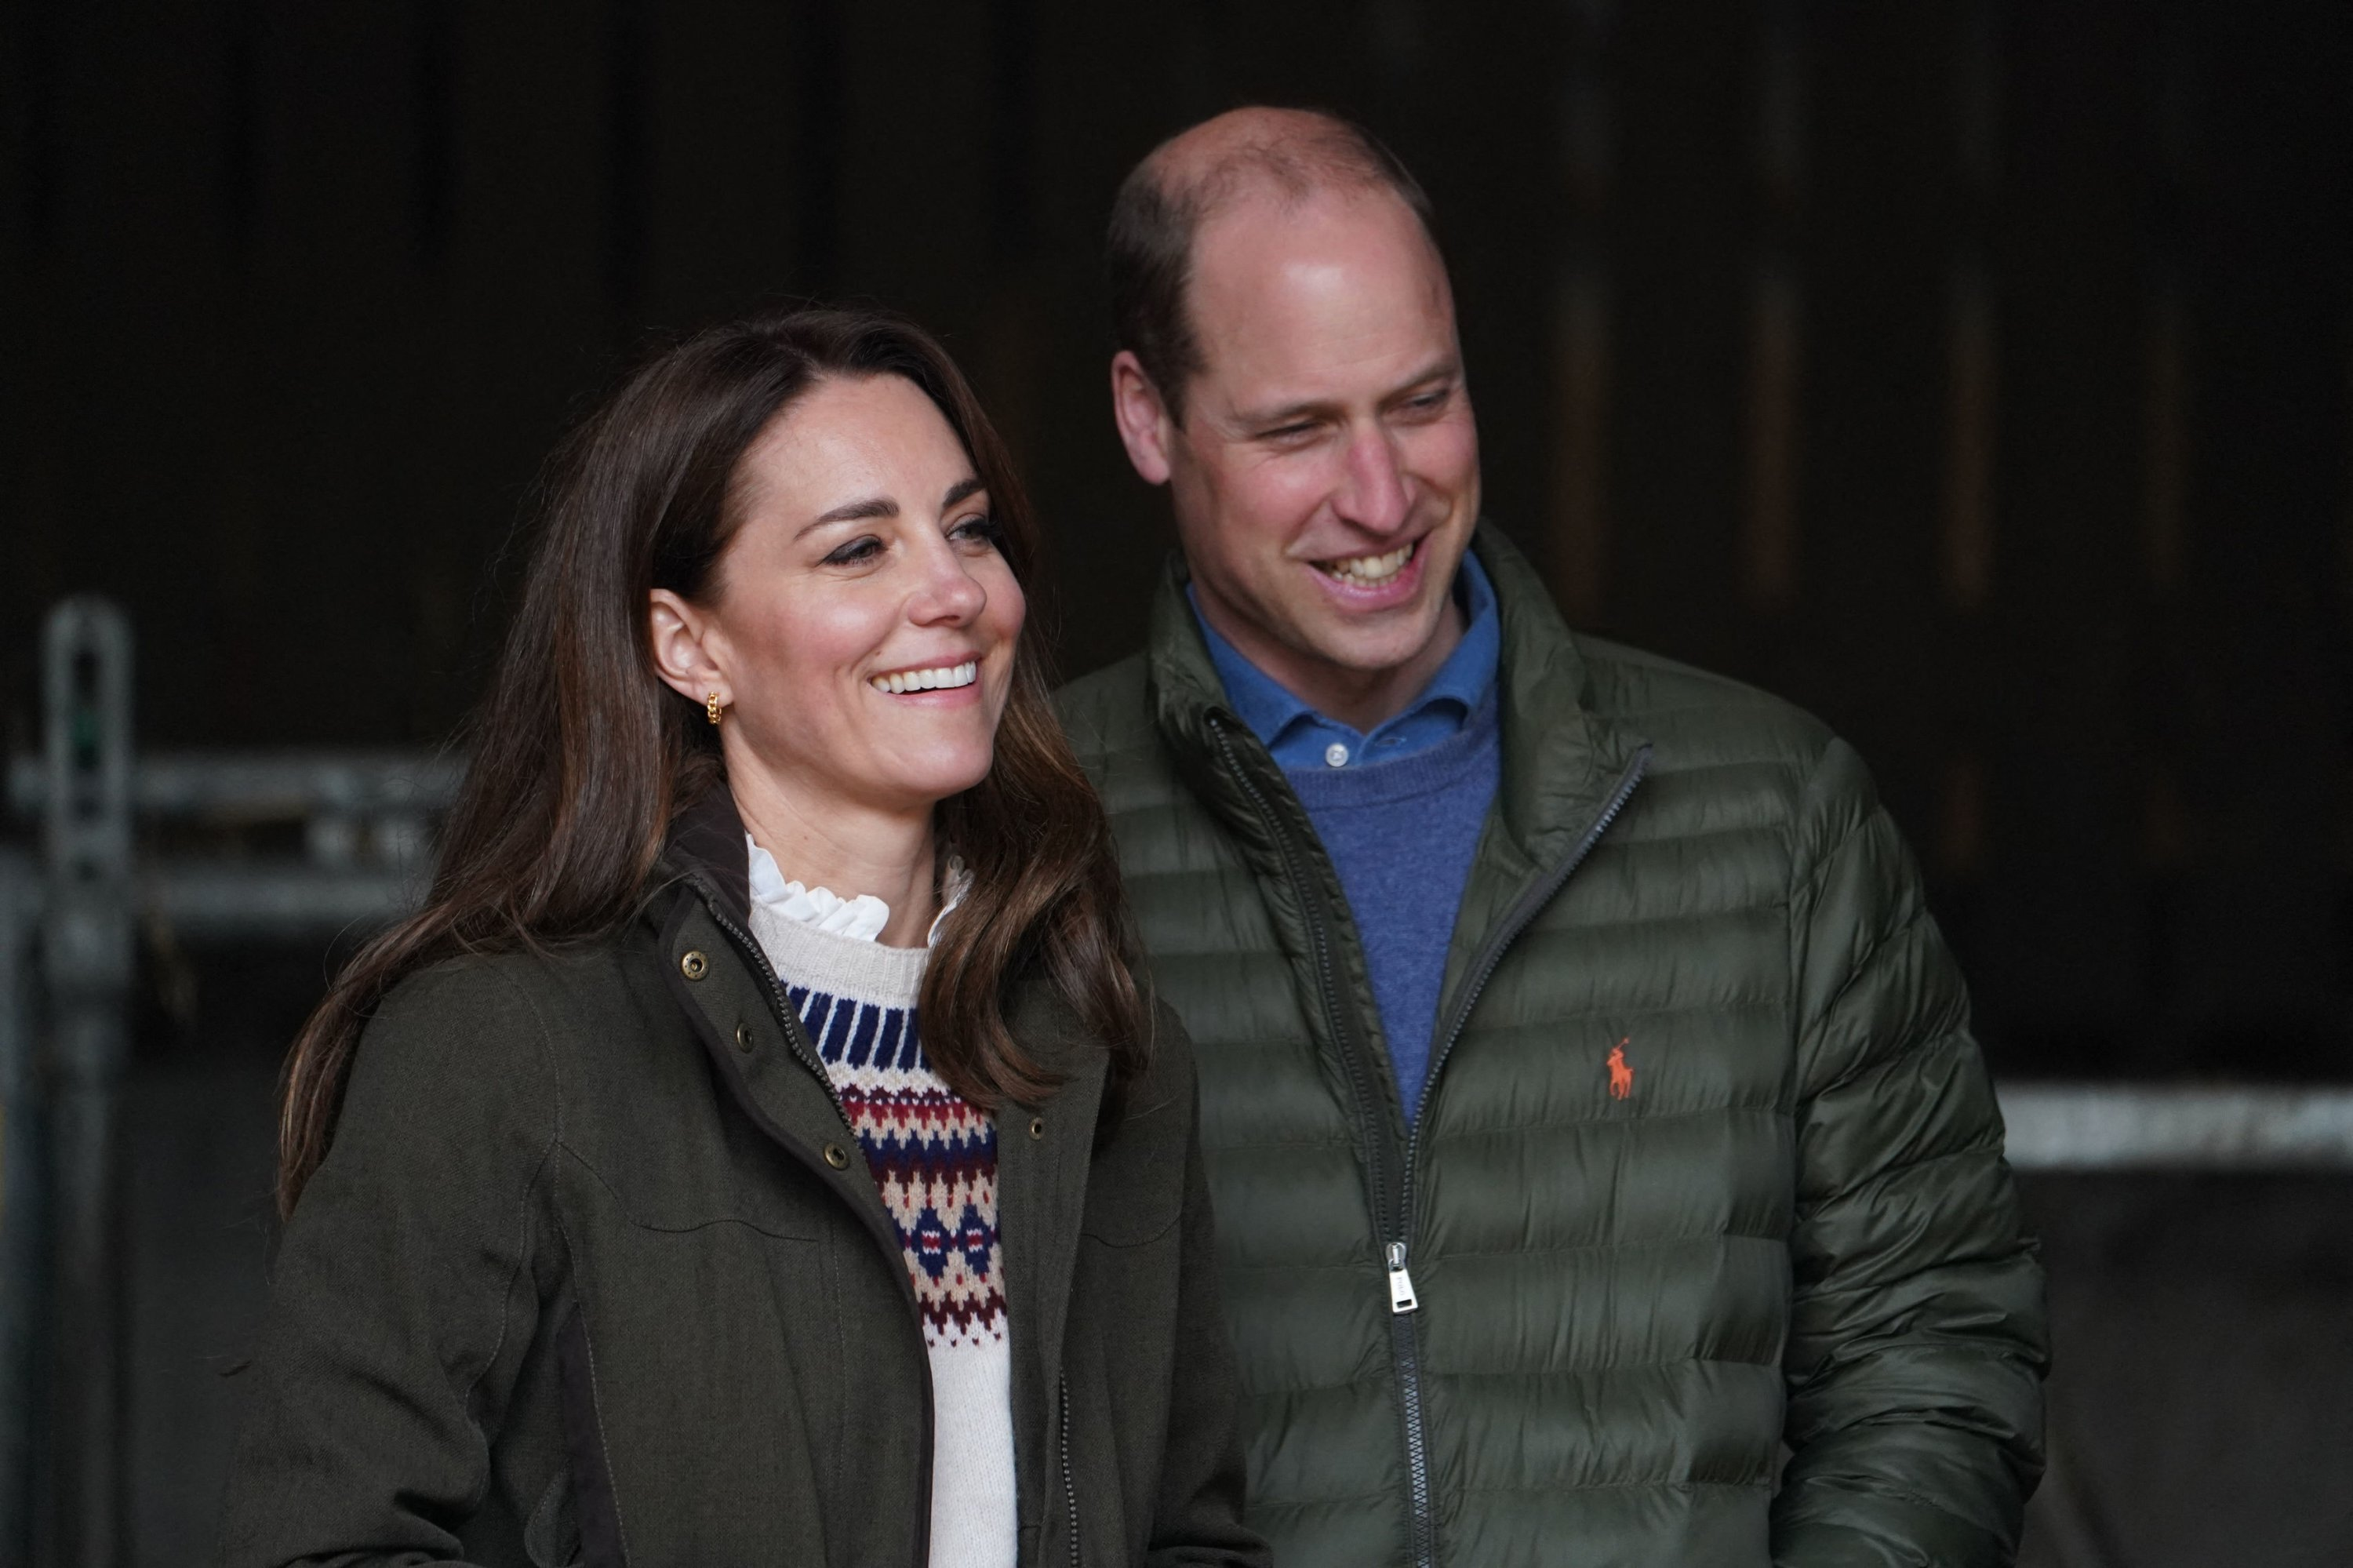 Catherine (L), Duchess of Cambridge, and Prince William, Duke of Cambridge, react during a visit to Manor Farm in Little Stainton, near Durham, northeast England, April 27, 2021. (AFP Photo)